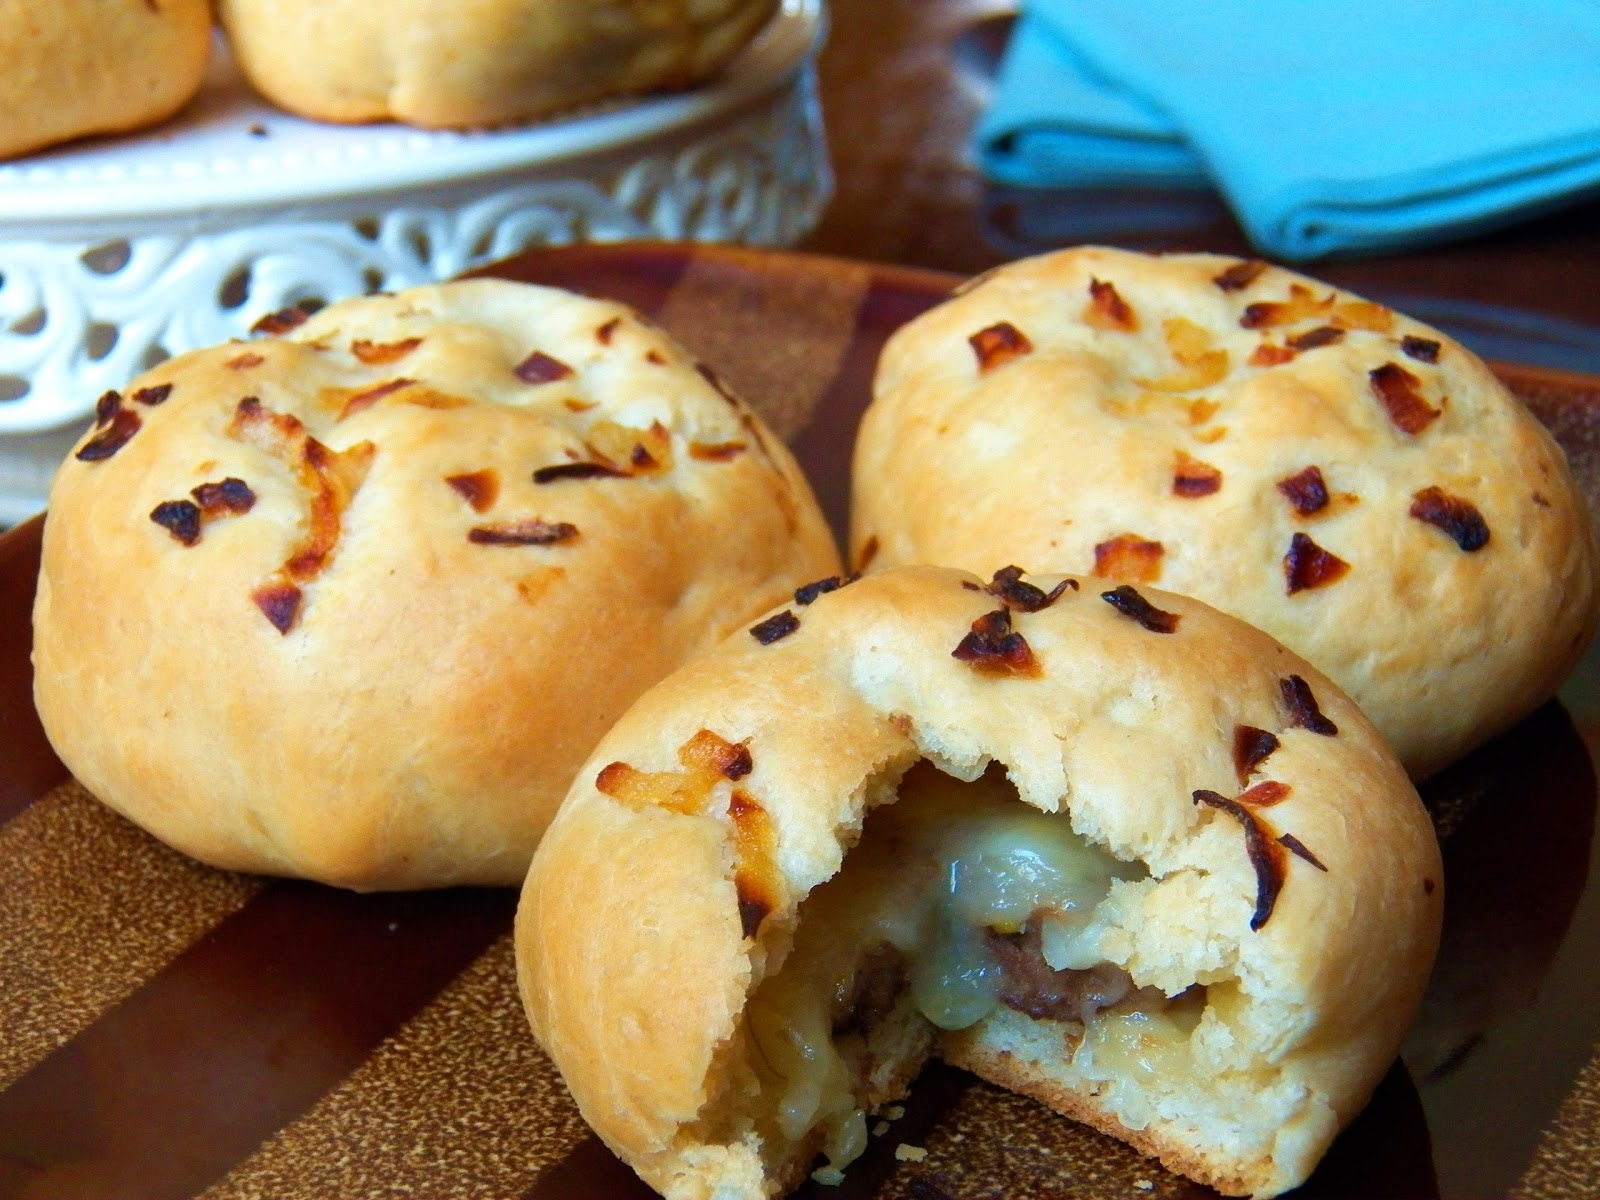 Cheeseburger Stuffed Buns